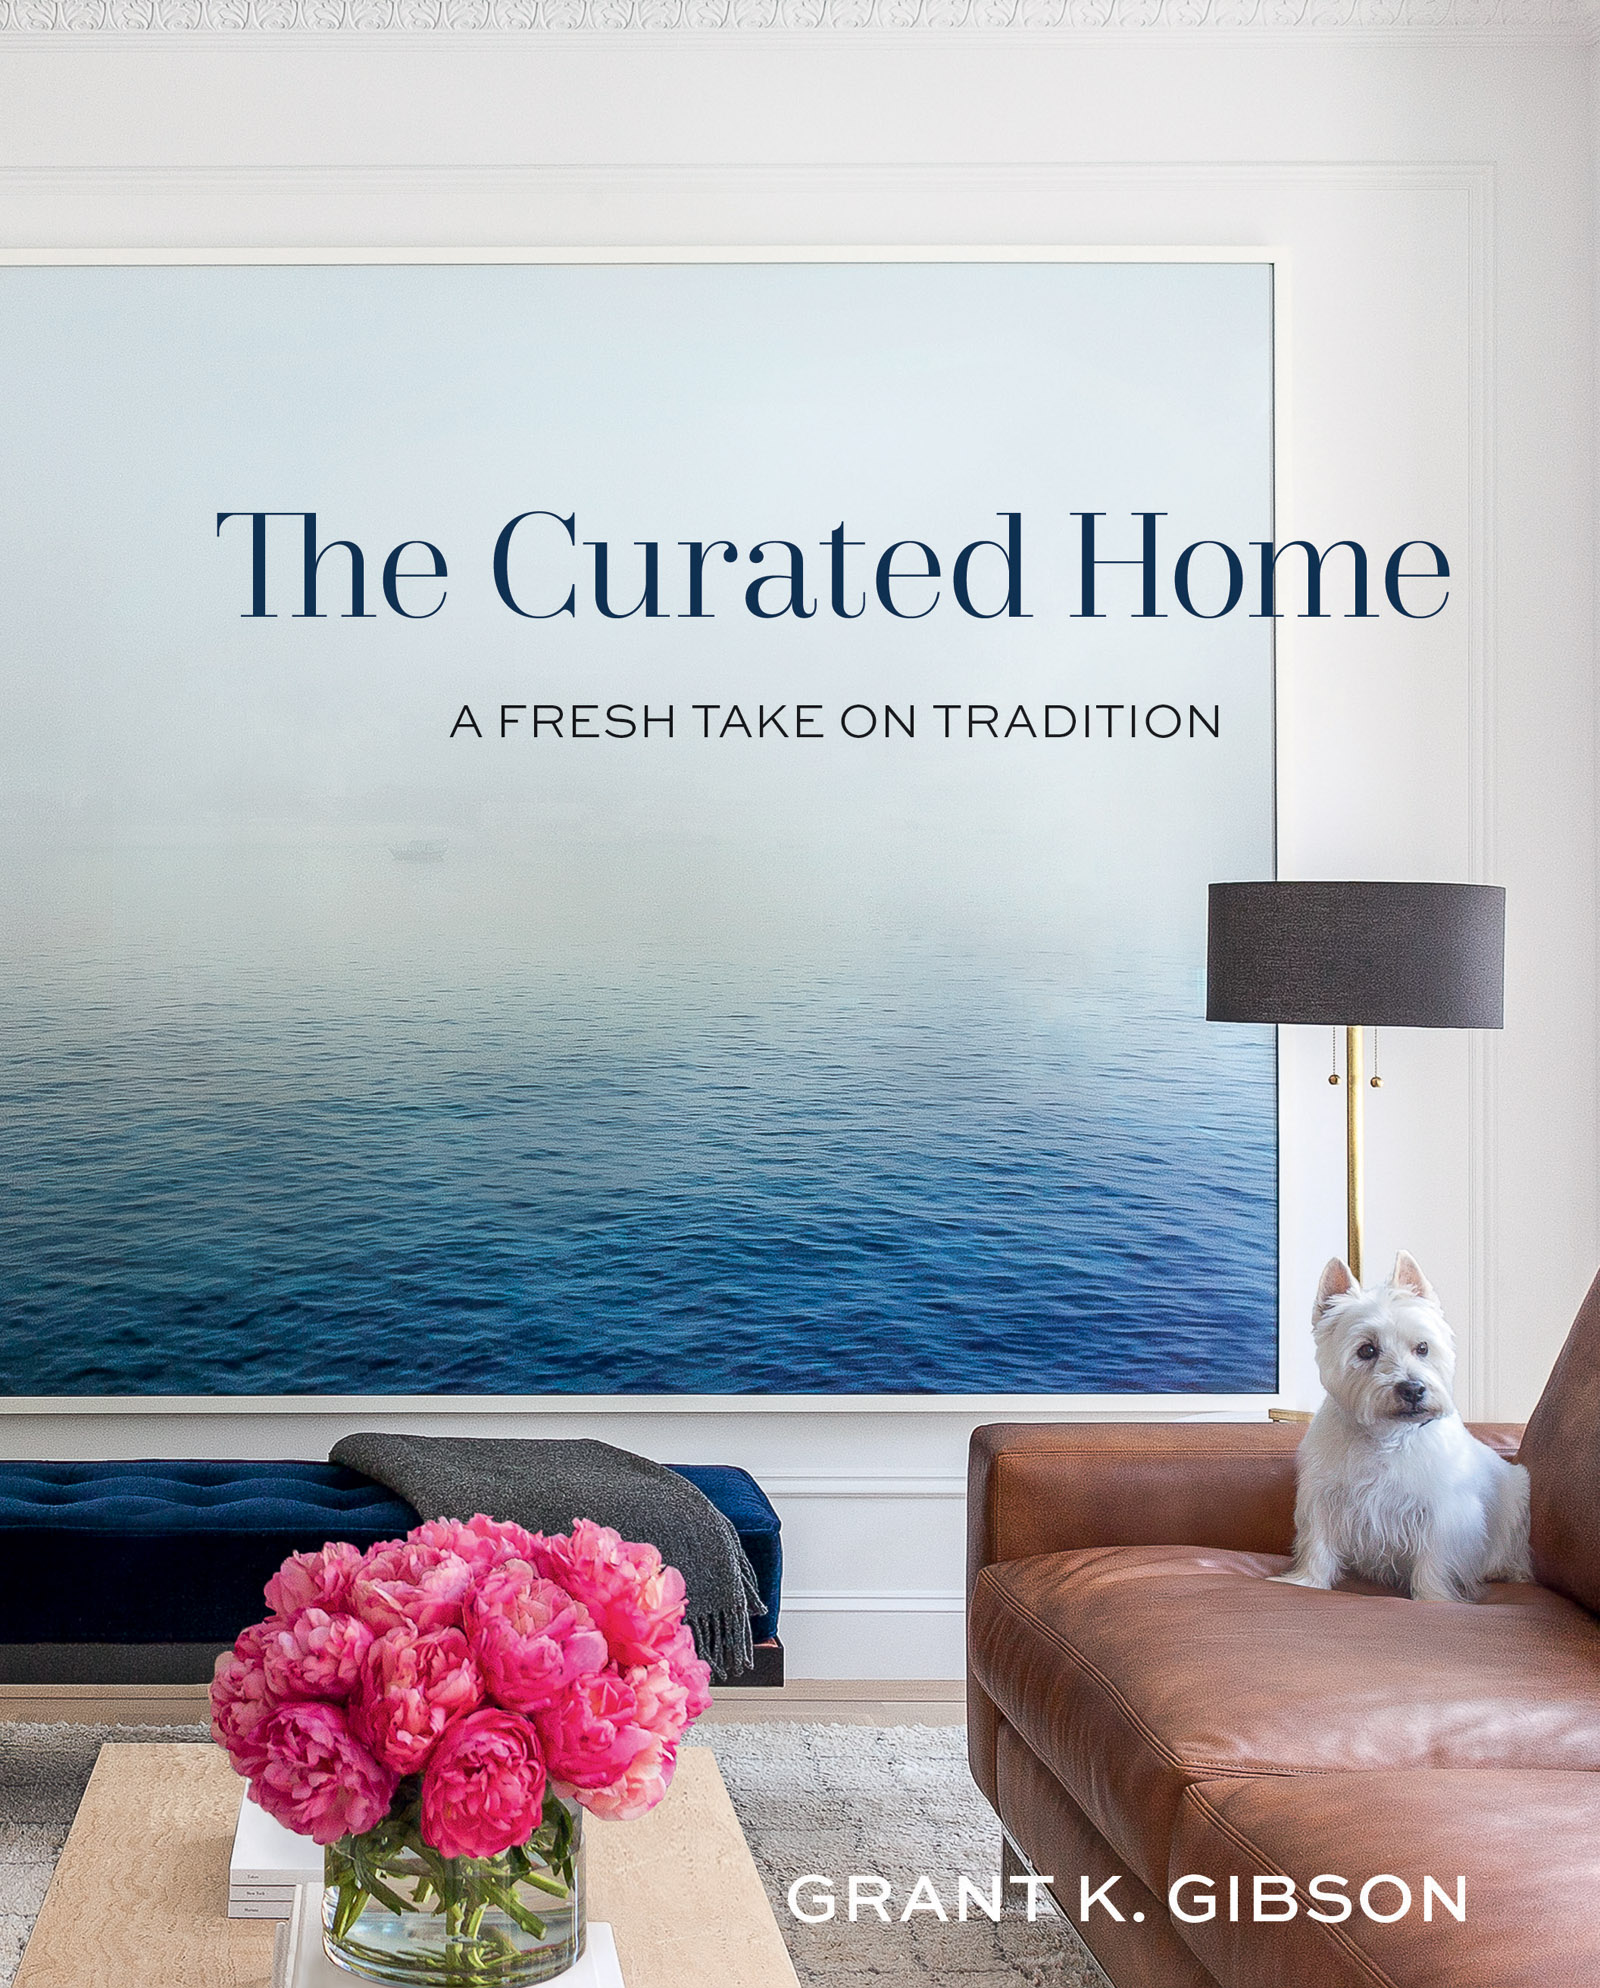 The Curated Home by Grant K. Gibson.